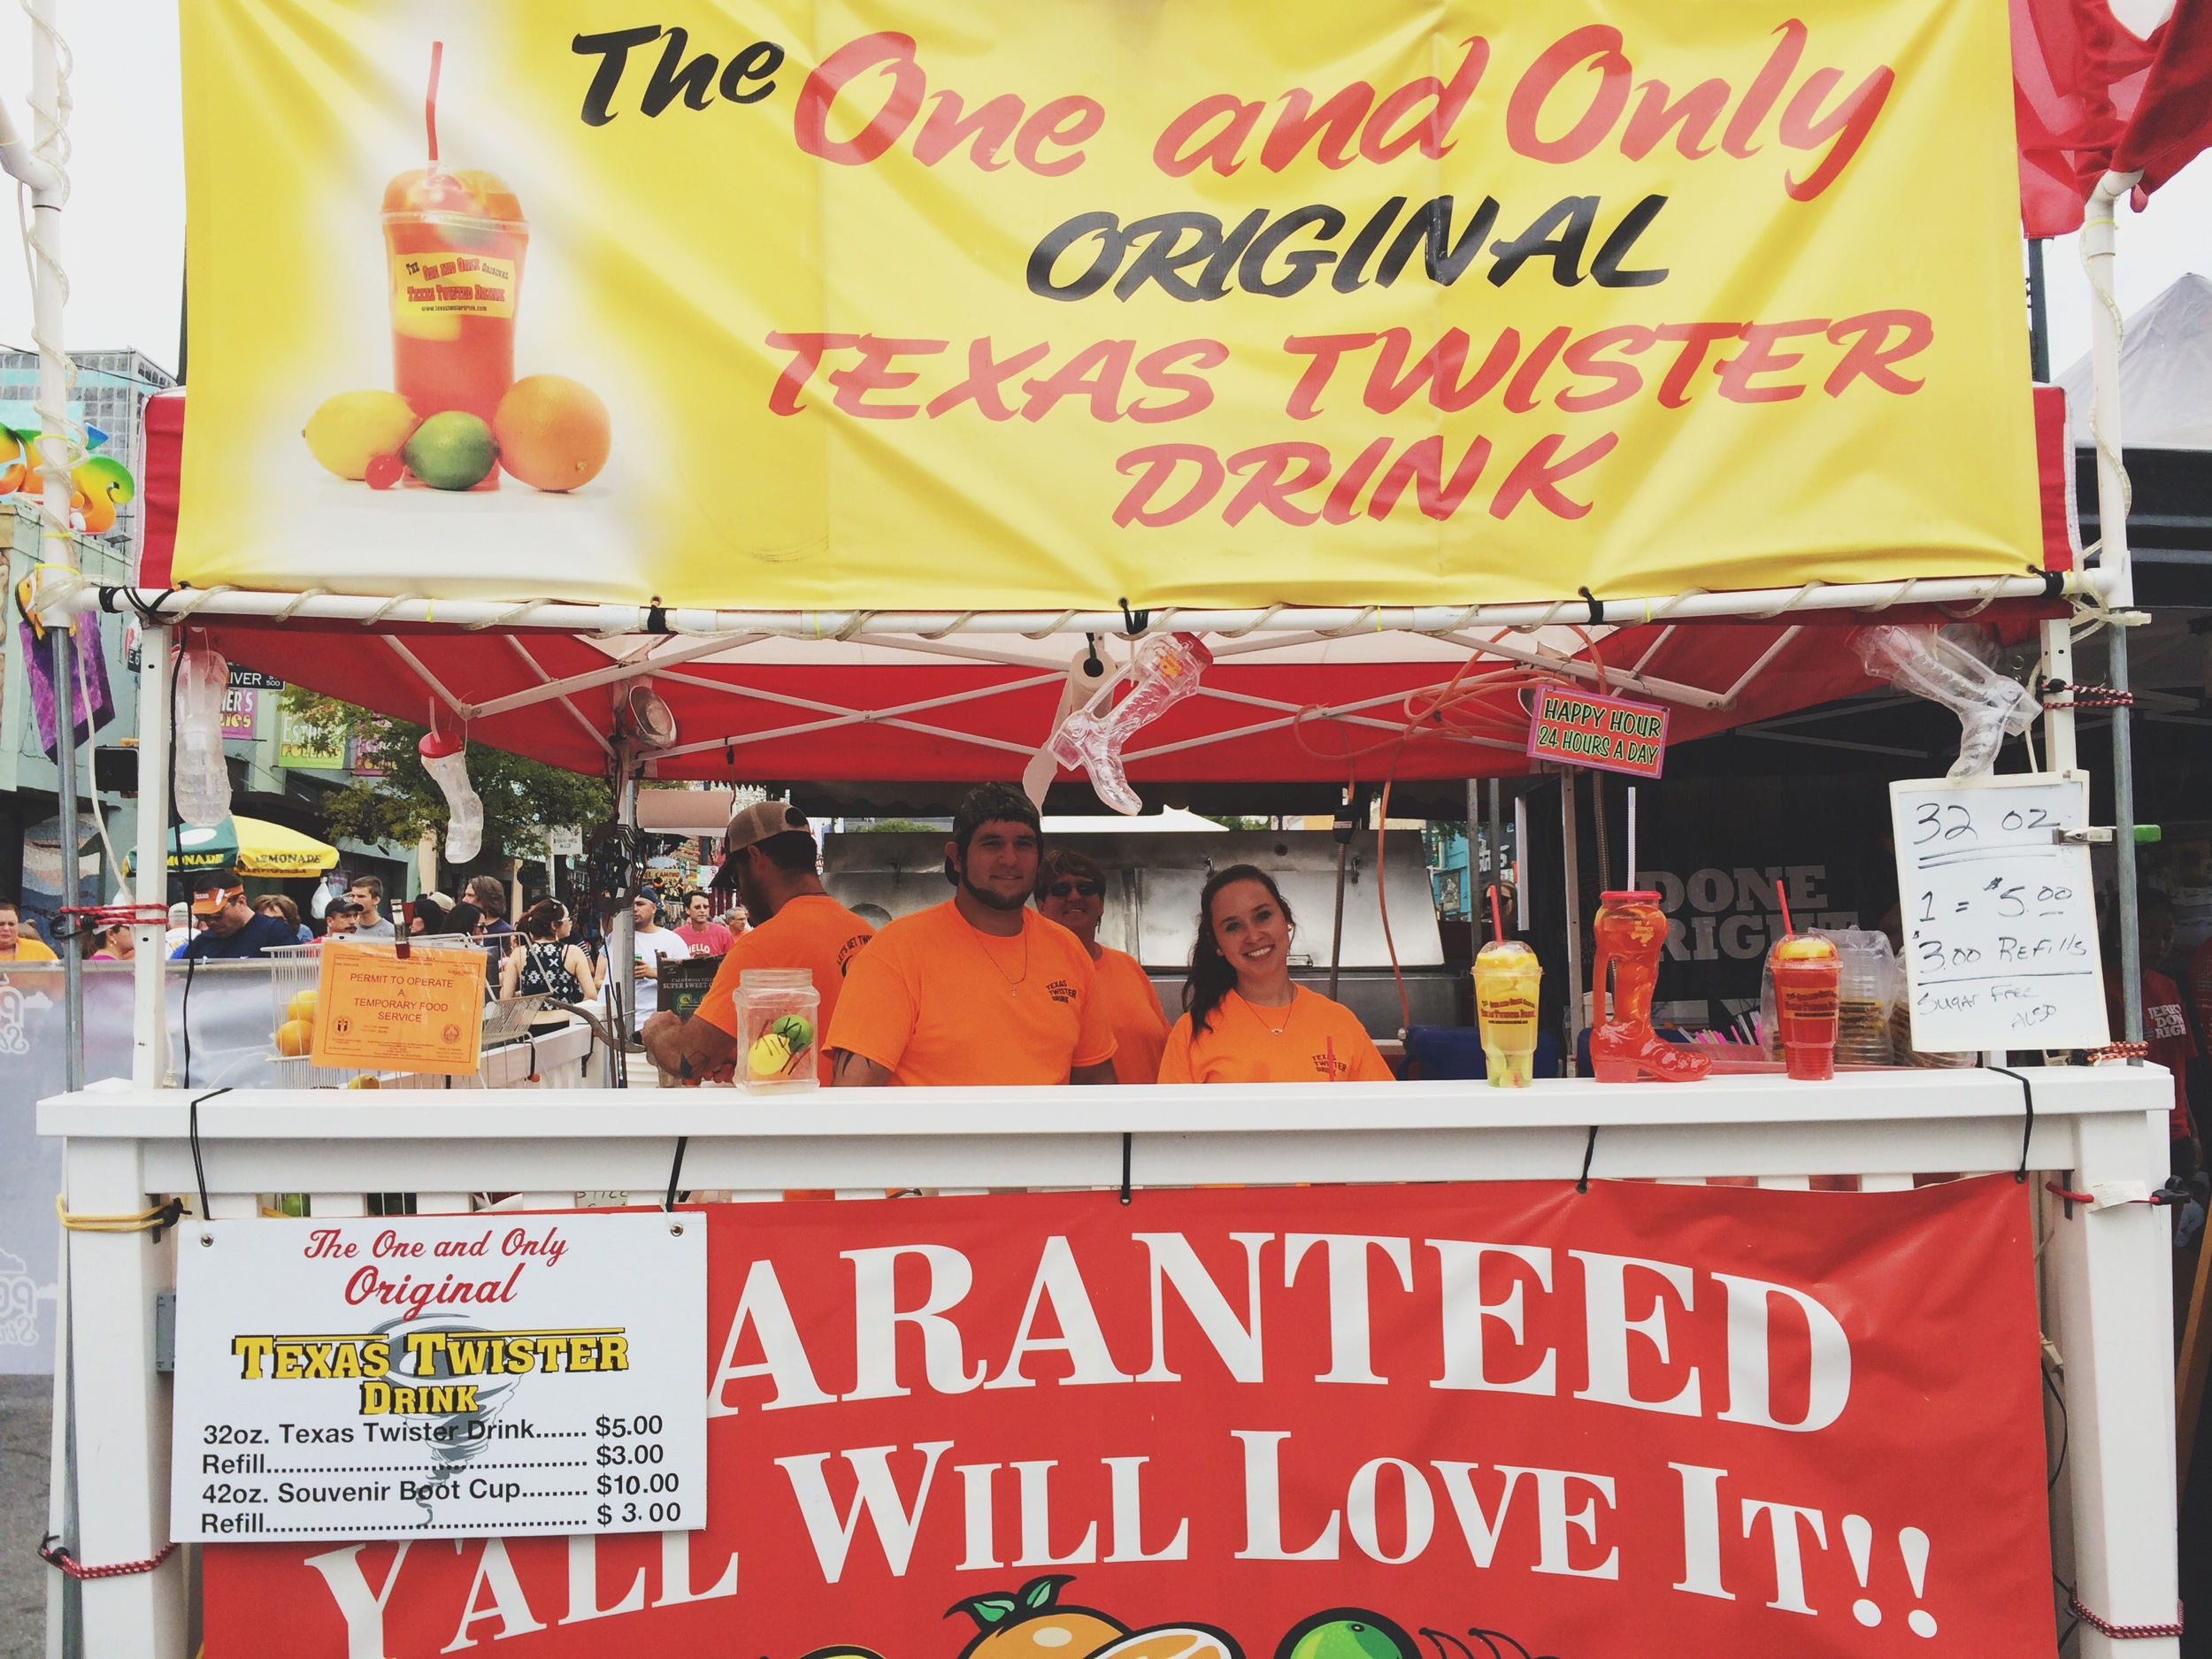 Wandered to 6th Street Pecan Festival, this drink stand, so very Texas.